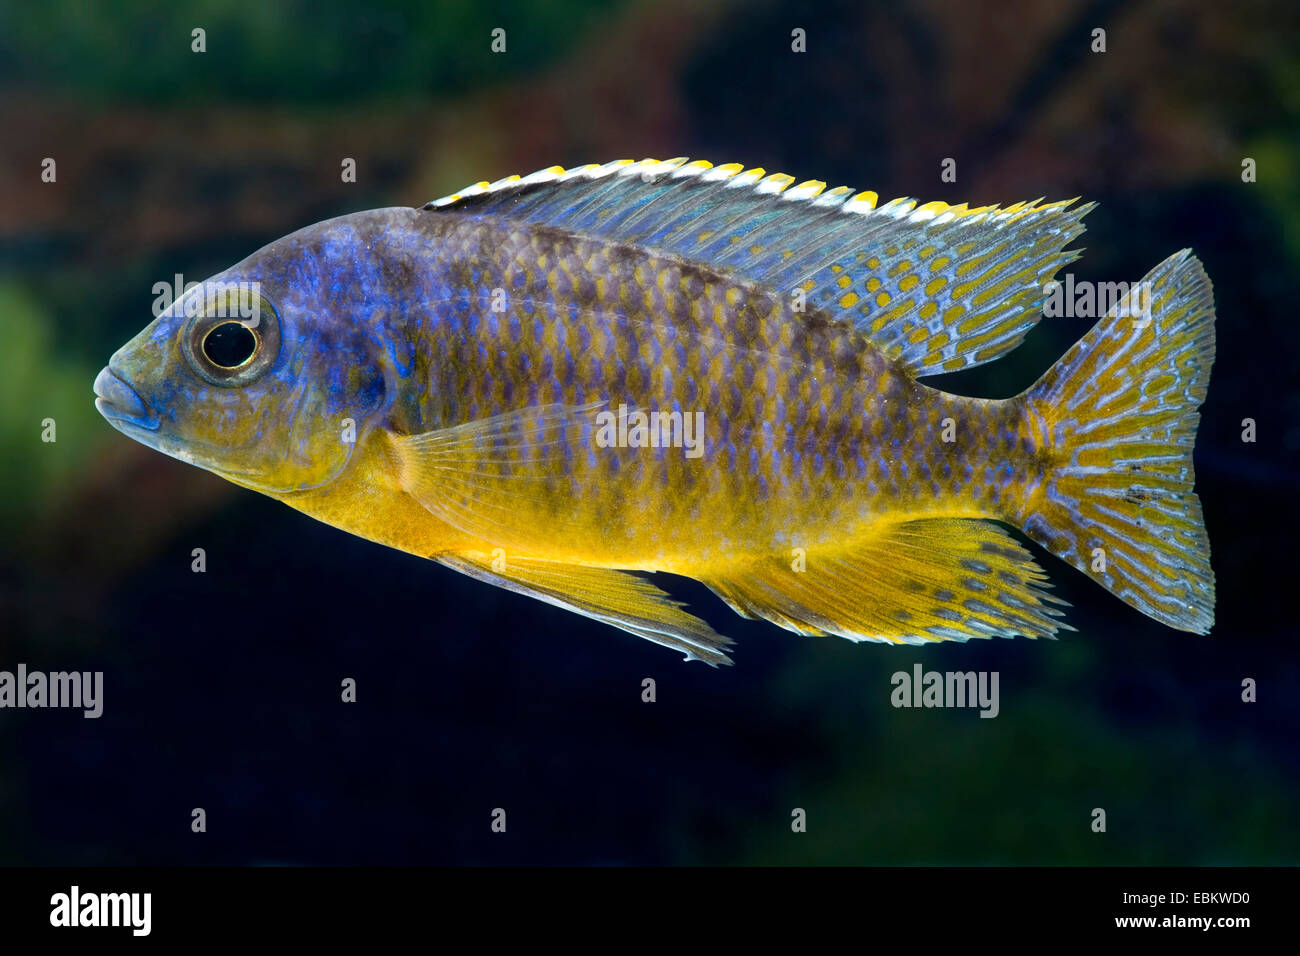 Malawi Cichlid (Protomelas virgatus), full length portrait - Stock Image